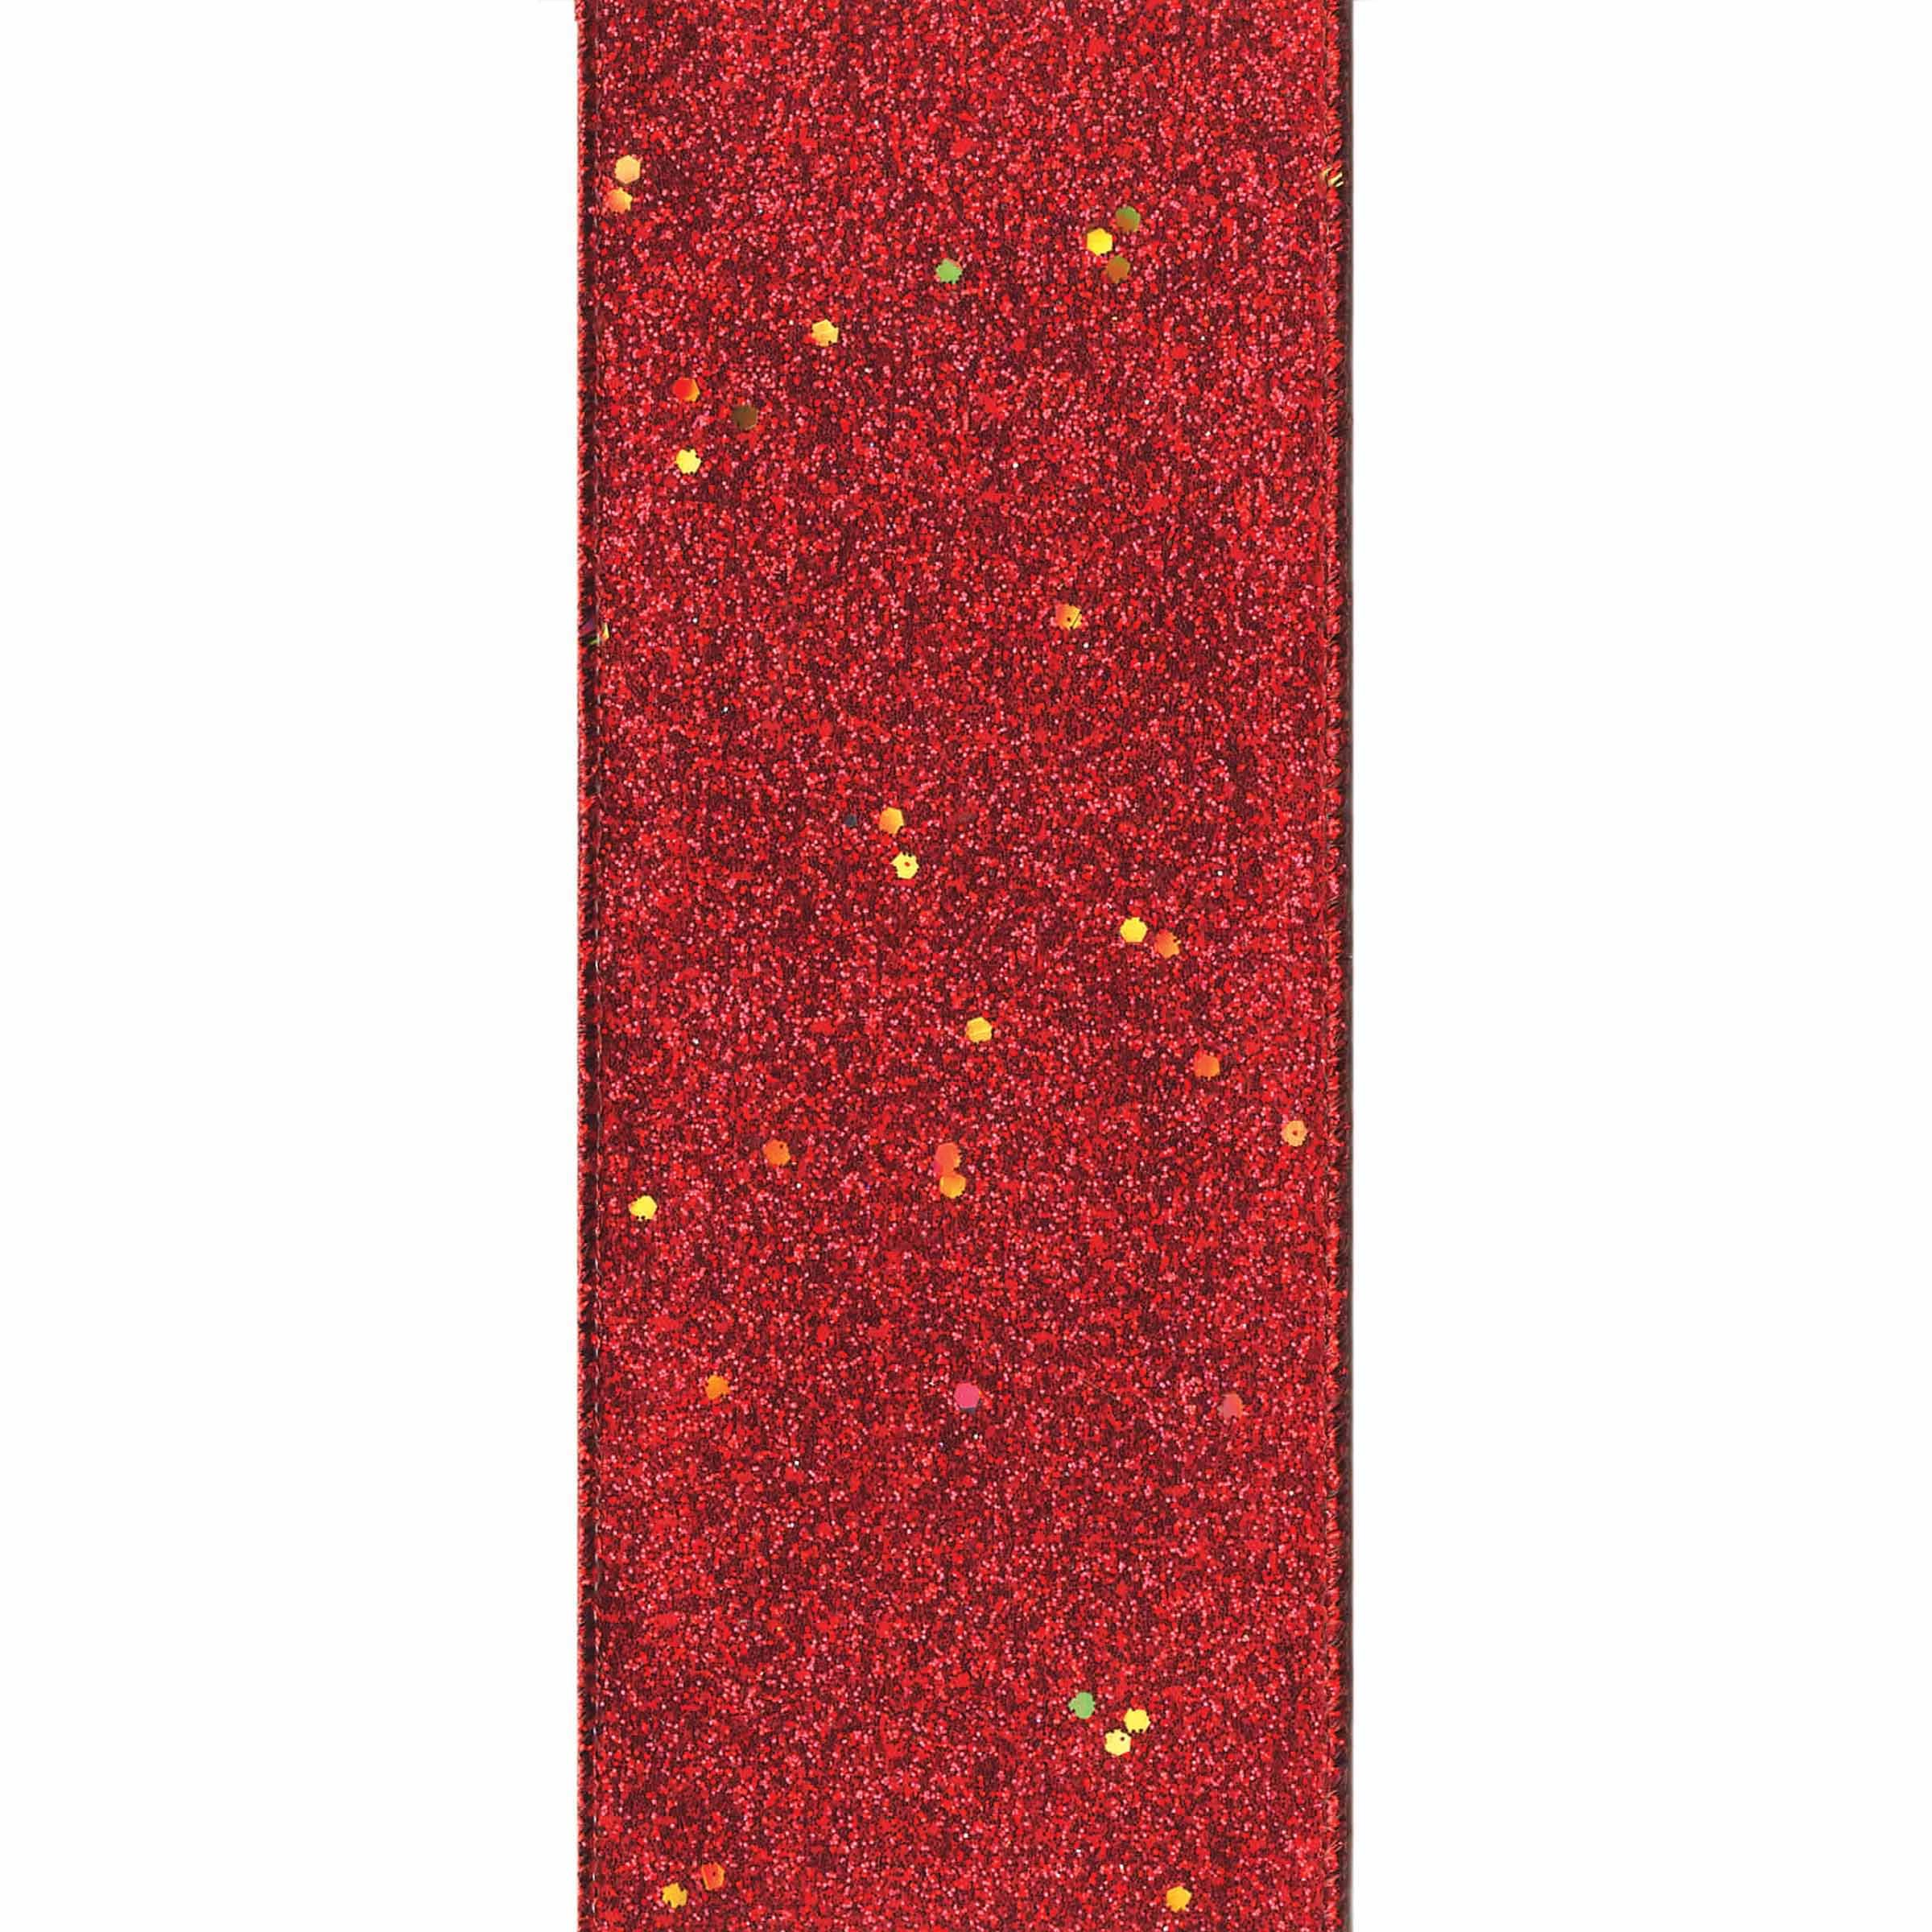 Offray Wired Edge Glitterie Craft Ribbon, 1 1/2-Inch x 9-Feet, Red